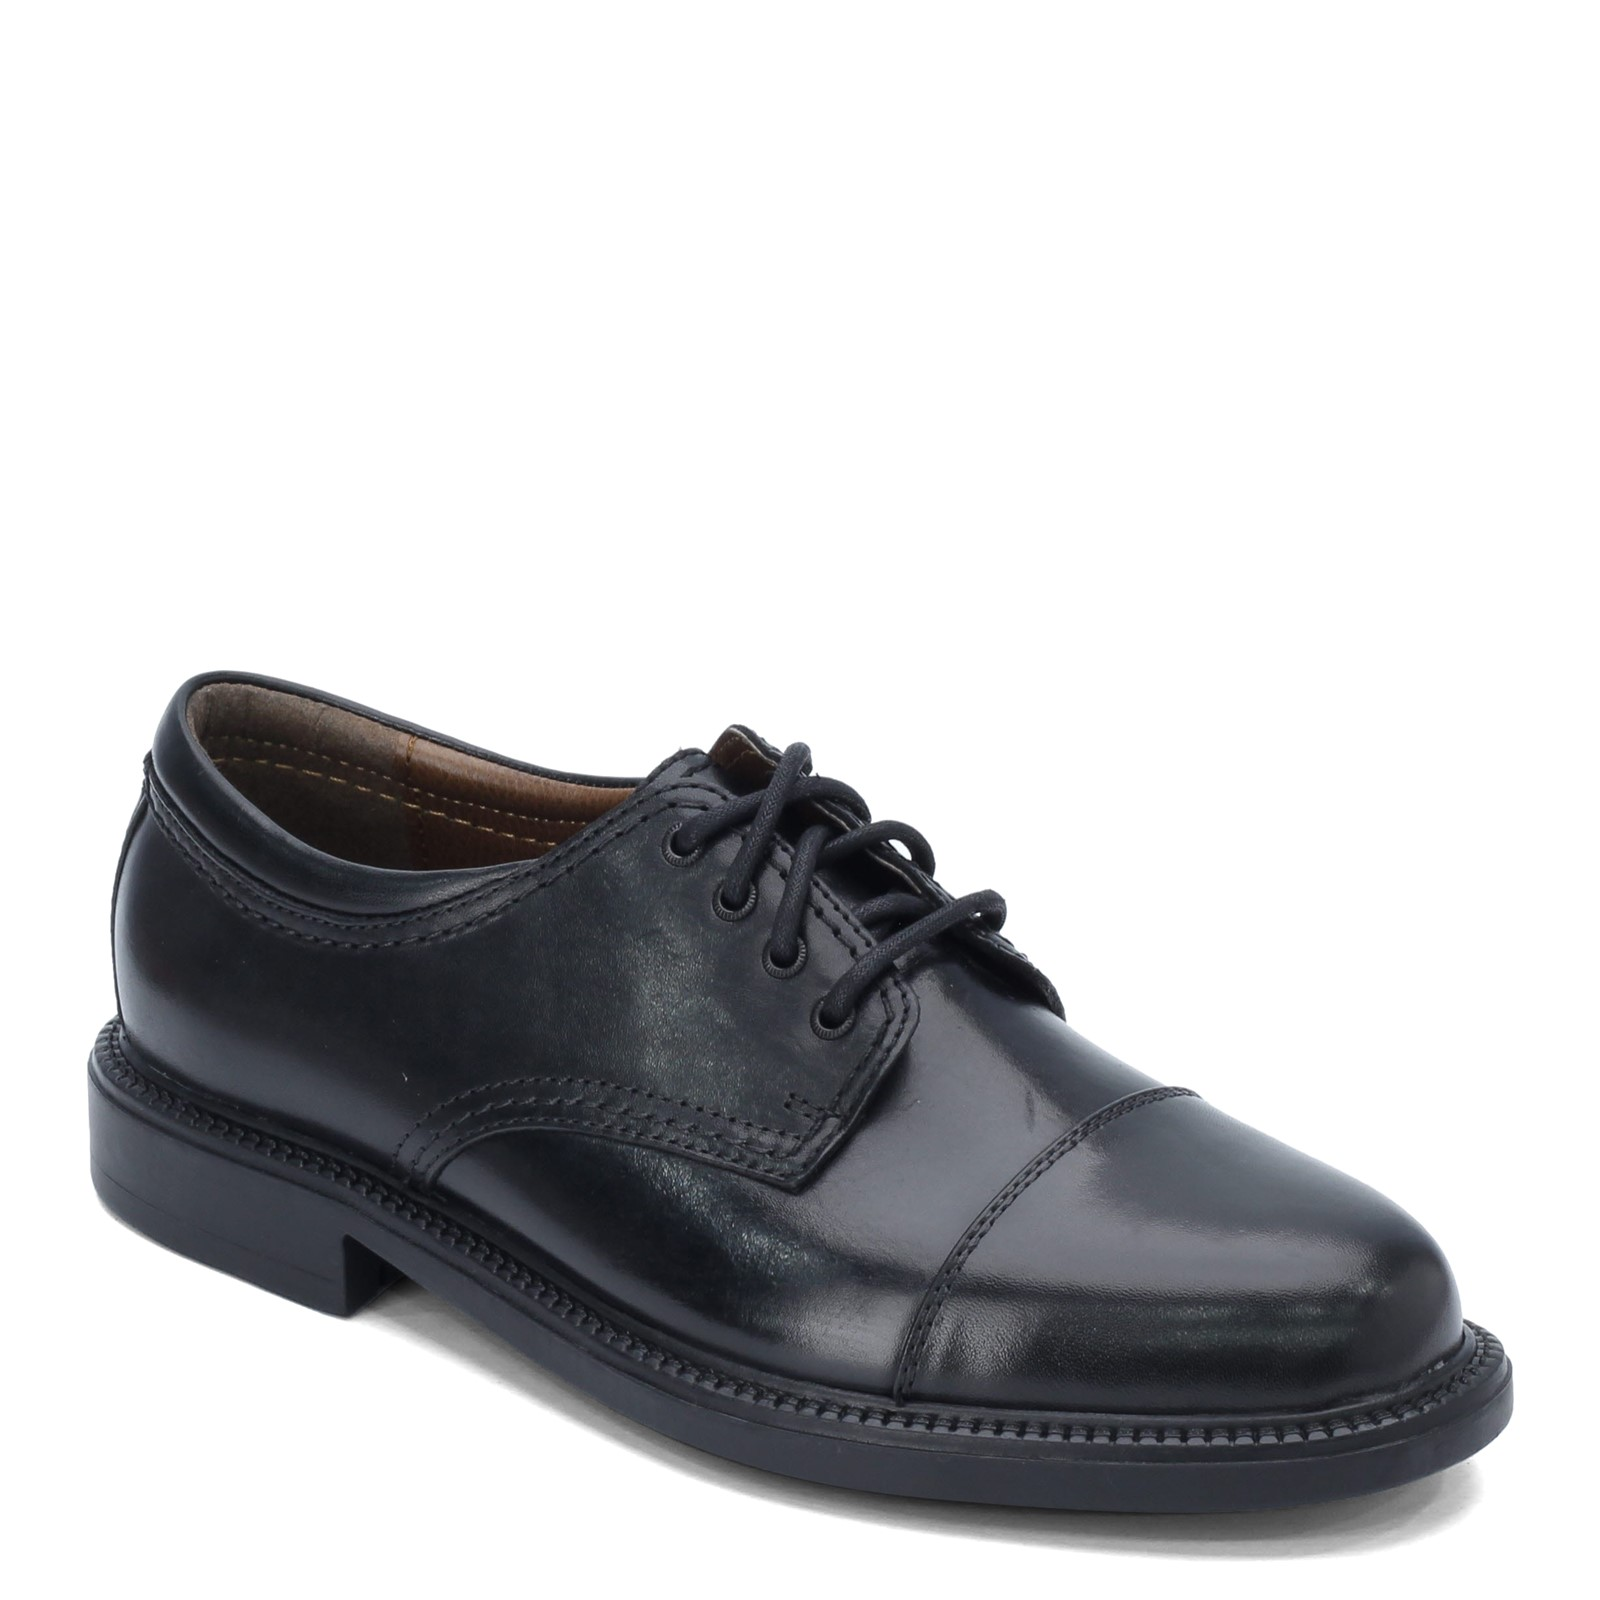 Men's Dockers, Gordon Oxford